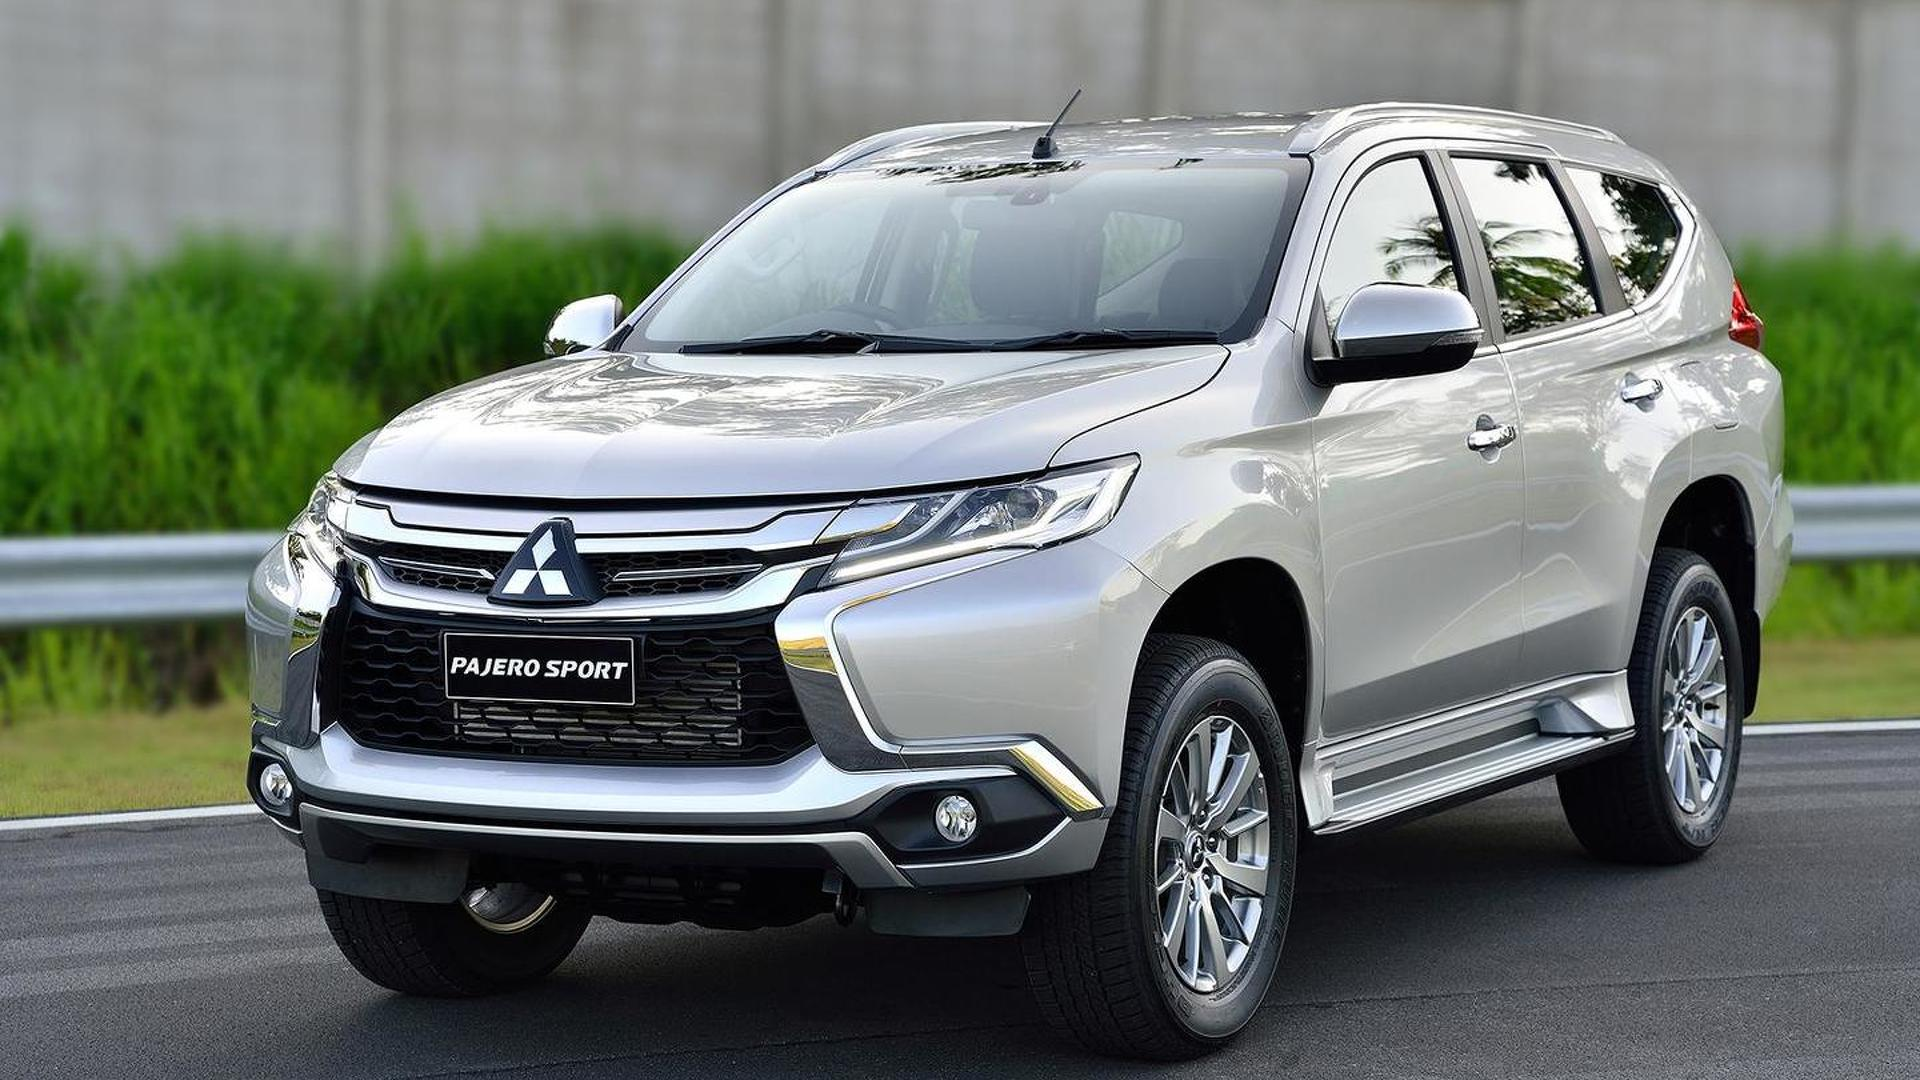 mitsubishi asx specs cars website reviews official in malaysia sale prices for